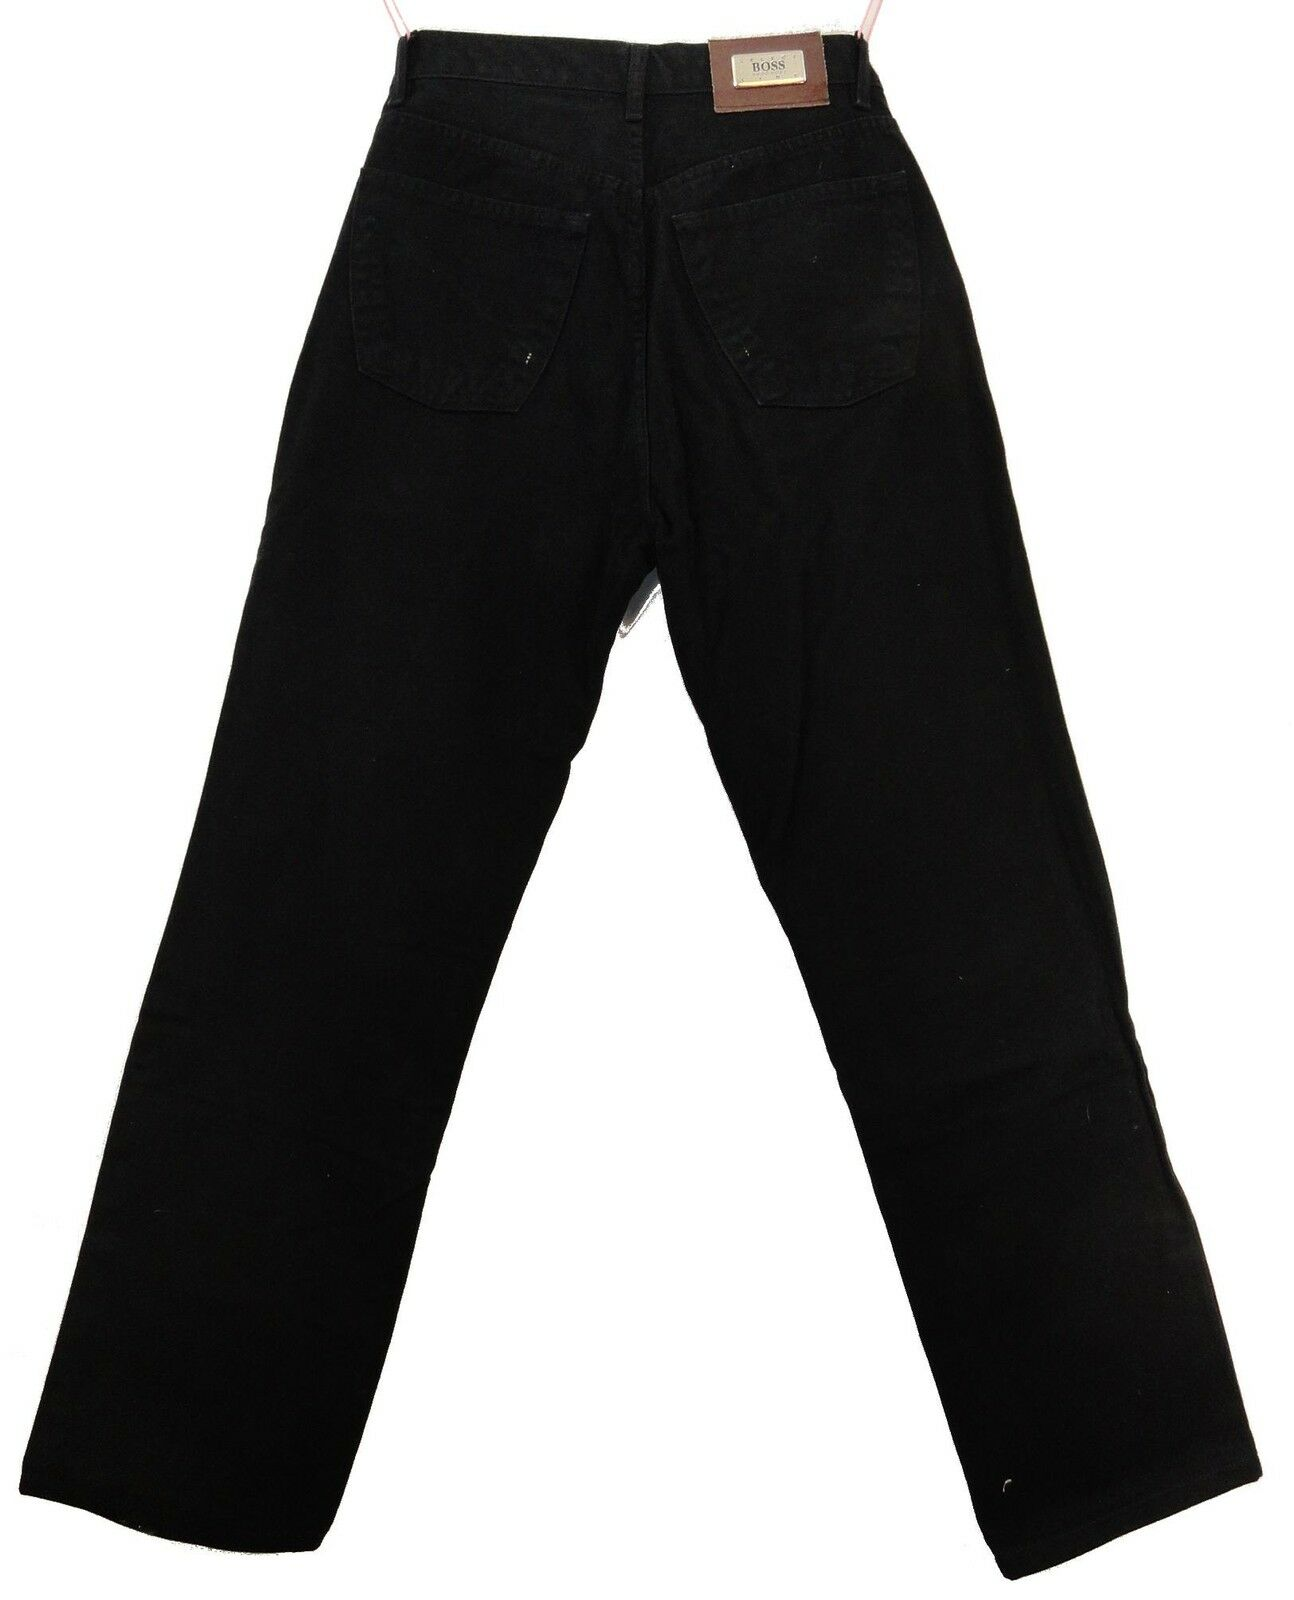 Hugo BOSS Jeans Jeans Jeans Alabama Texas, w33 NERO-h52 2c5a28